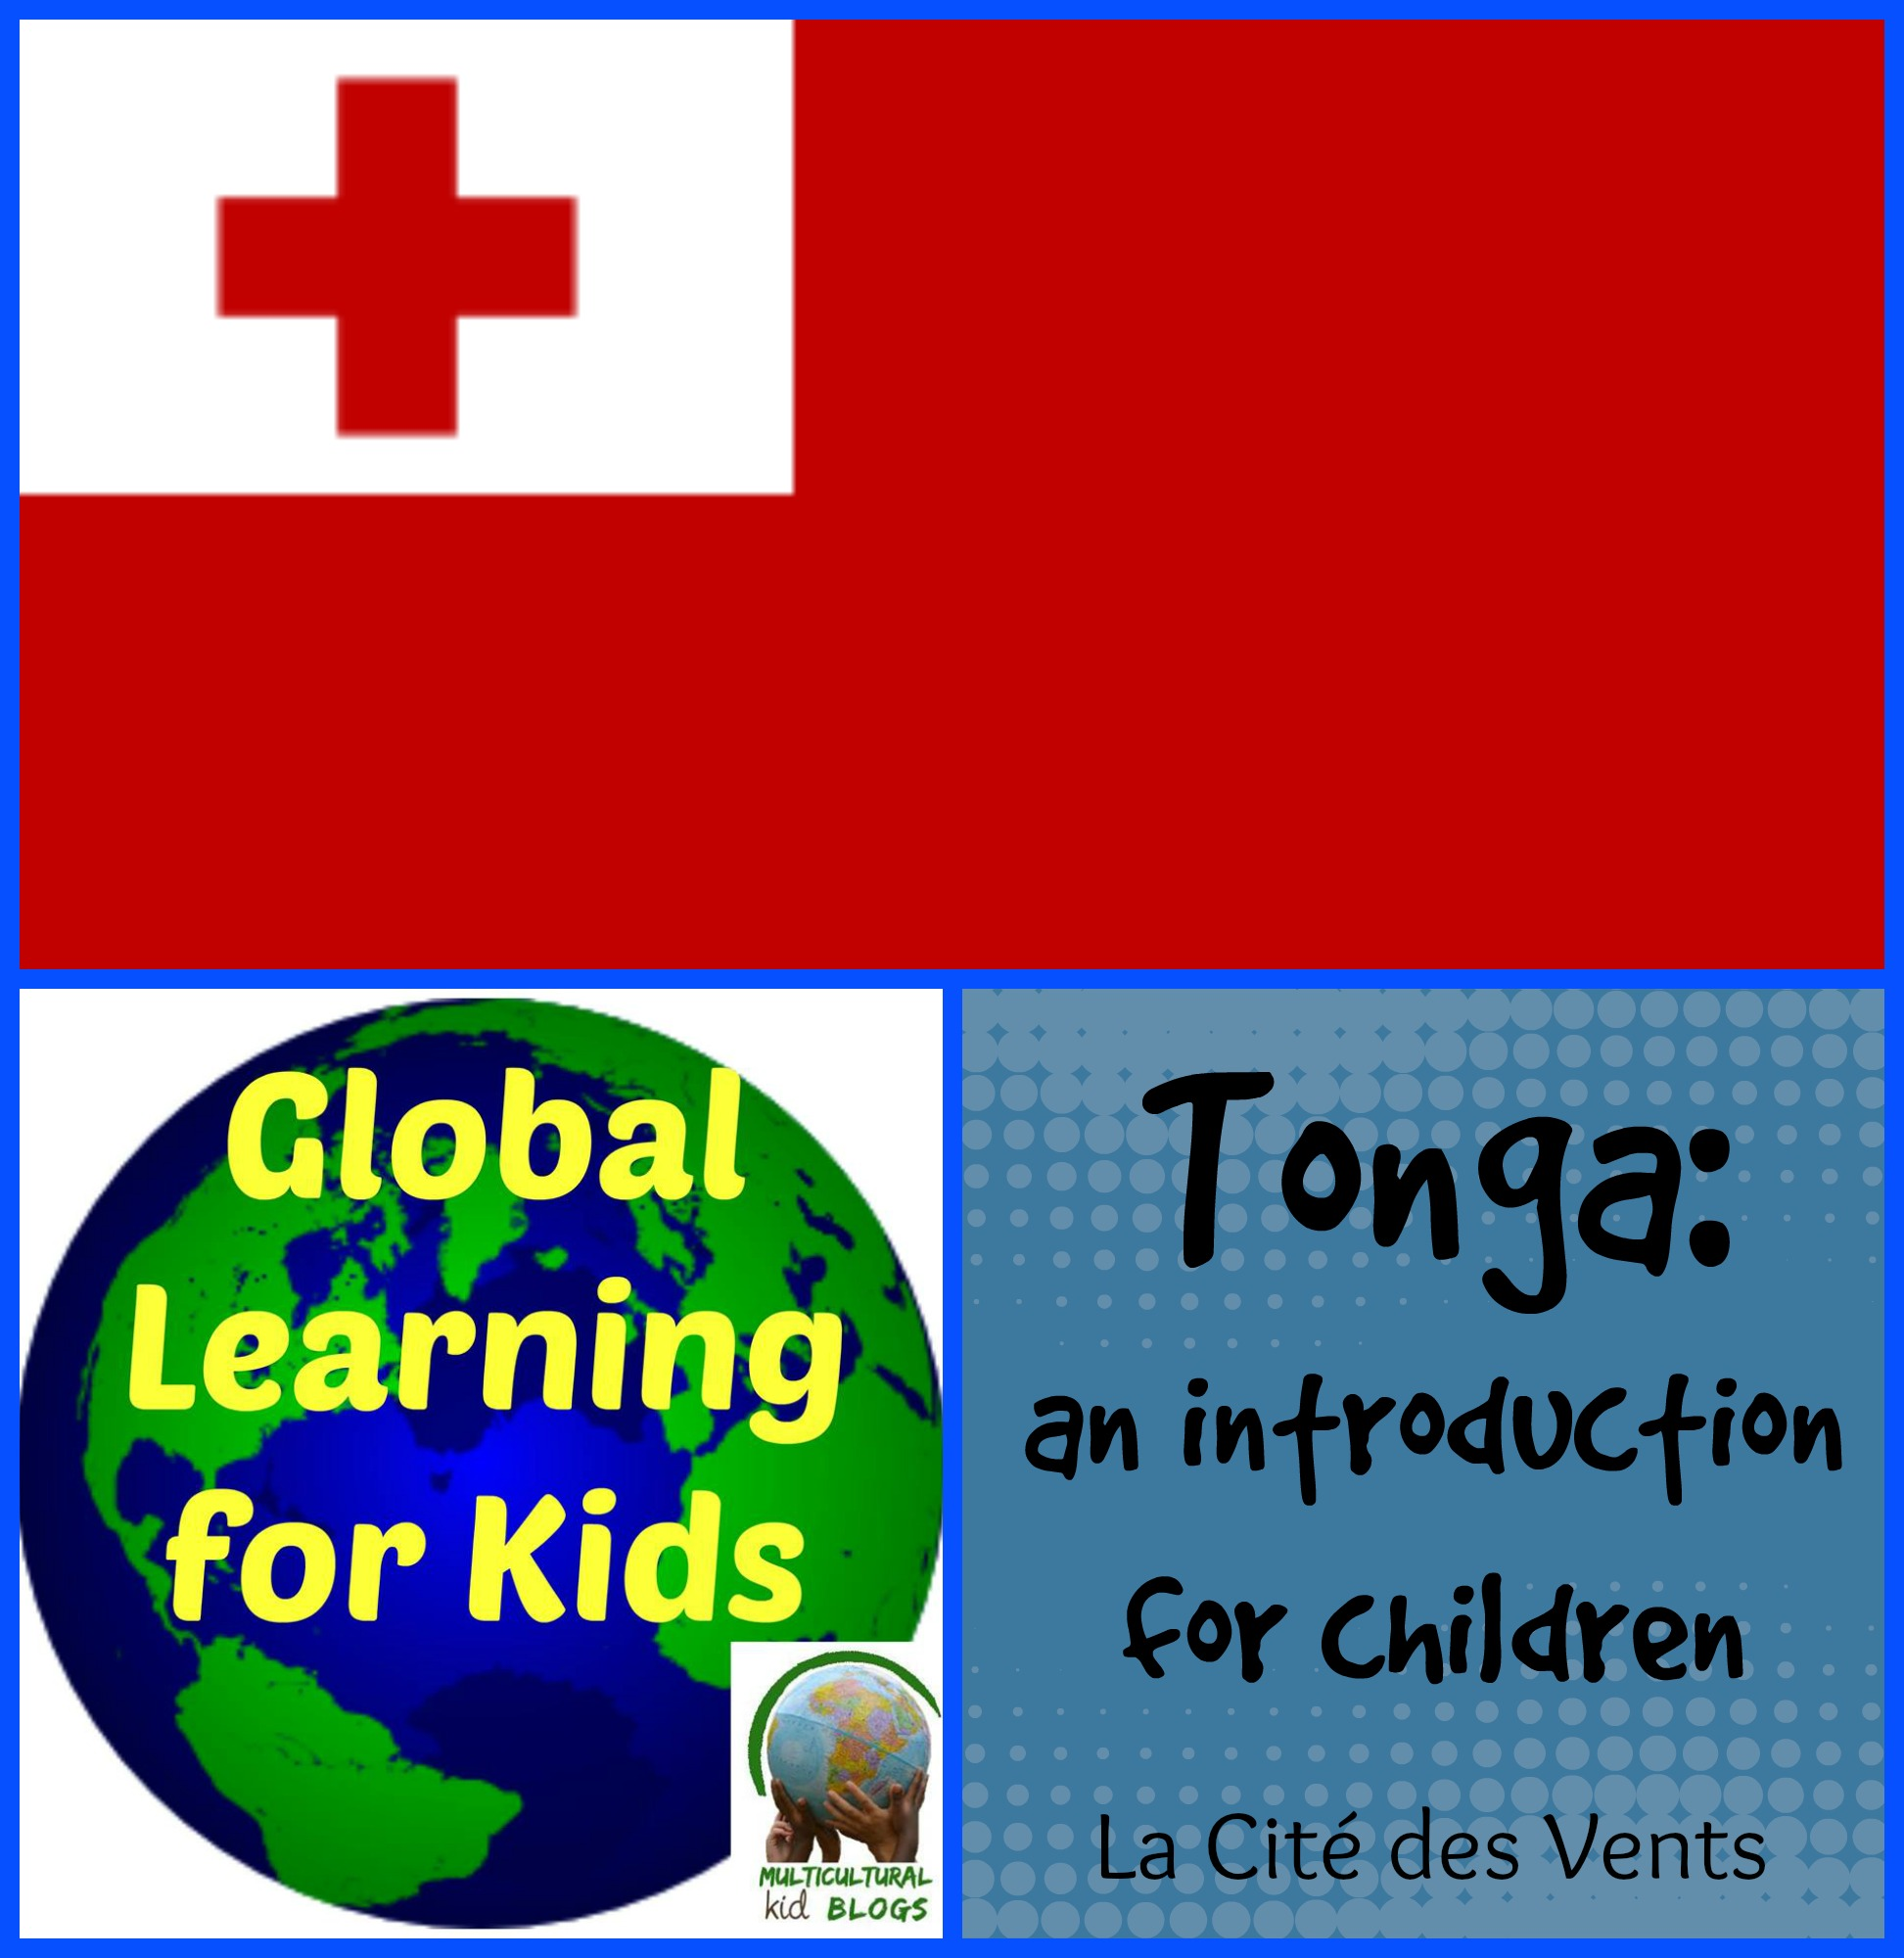 tonga an introduction for children   multicultural kid blogs